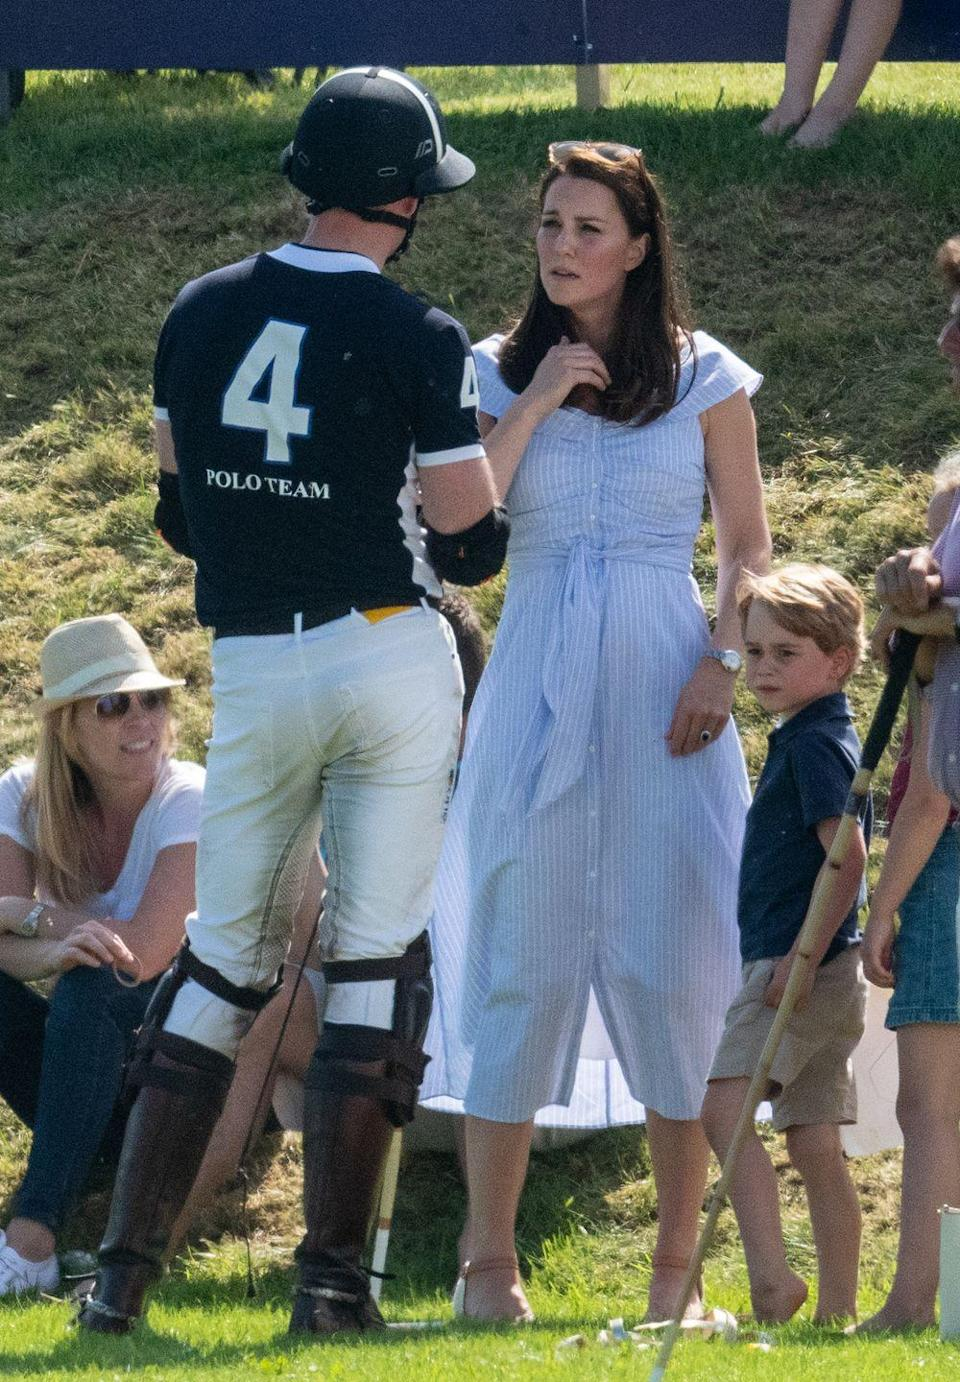 """<p>Duchess Kate wore another blue dress just hours after the Trooping the Colour parade! <a href=""""https://www.townandcountrymag.com/society/tradition/a21252562/kate-middleton-zara-blue-striped-dress-polo-match/"""" rel=""""nofollow noopener"""" target=""""_blank"""" data-ylk=""""slk:The Duchess wore a $70 off-the-shoulder dress by Zara"""" class=""""link rapid-noclick-resp"""">The Duchess wore a $70 off-the-shoulder dress by Zara</a> with espadrilles and sunglasses while attending Prince William's charity polo match with Prince George and Princess Charlotte. </p><p><a class=""""link rapid-noclick-resp"""" href=""""https://go.redirectingat.com?id=74968X1596630&url=https%3A%2F%2Fwww.zara.com%2Fus%2Fen%2Fstriped-off-the-shoulder-dress-p04043095.html&sref=https%3A%2F%2Fwww.redbookmag.com%2Flife%2Fg34824194%2Fkate-middleton-fashion%2F"""" rel=""""nofollow noopener"""" target=""""_blank"""" data-ylk=""""slk:SHOP NOW"""">SHOP NOW</a> Zara <em>Striped Off-the-Shoulder Dress, $69.90 </em><br></p>"""